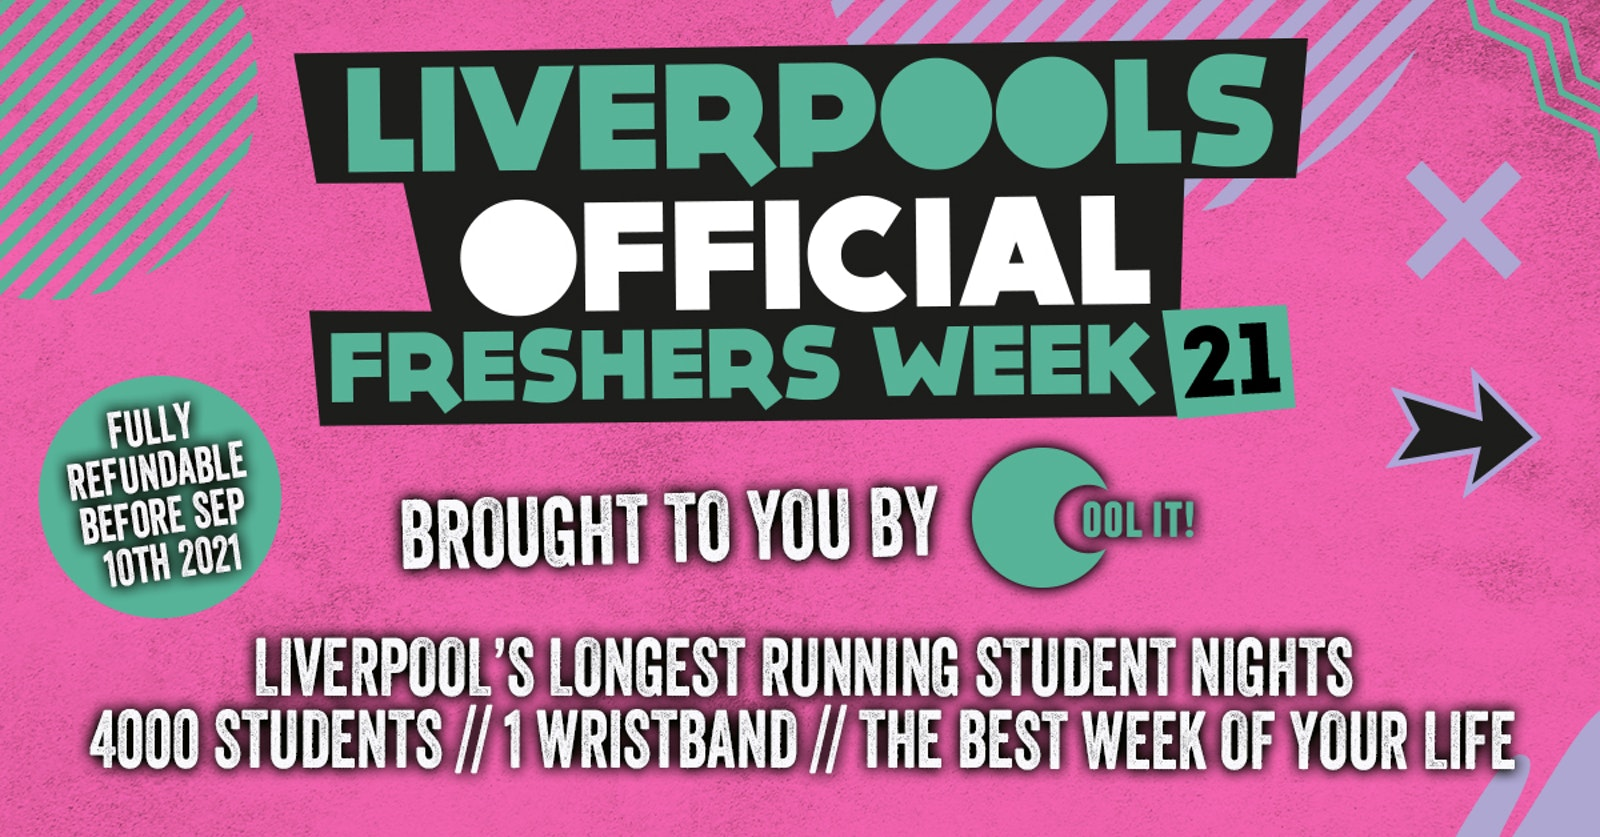 Liverpool's Official Freshers 2021